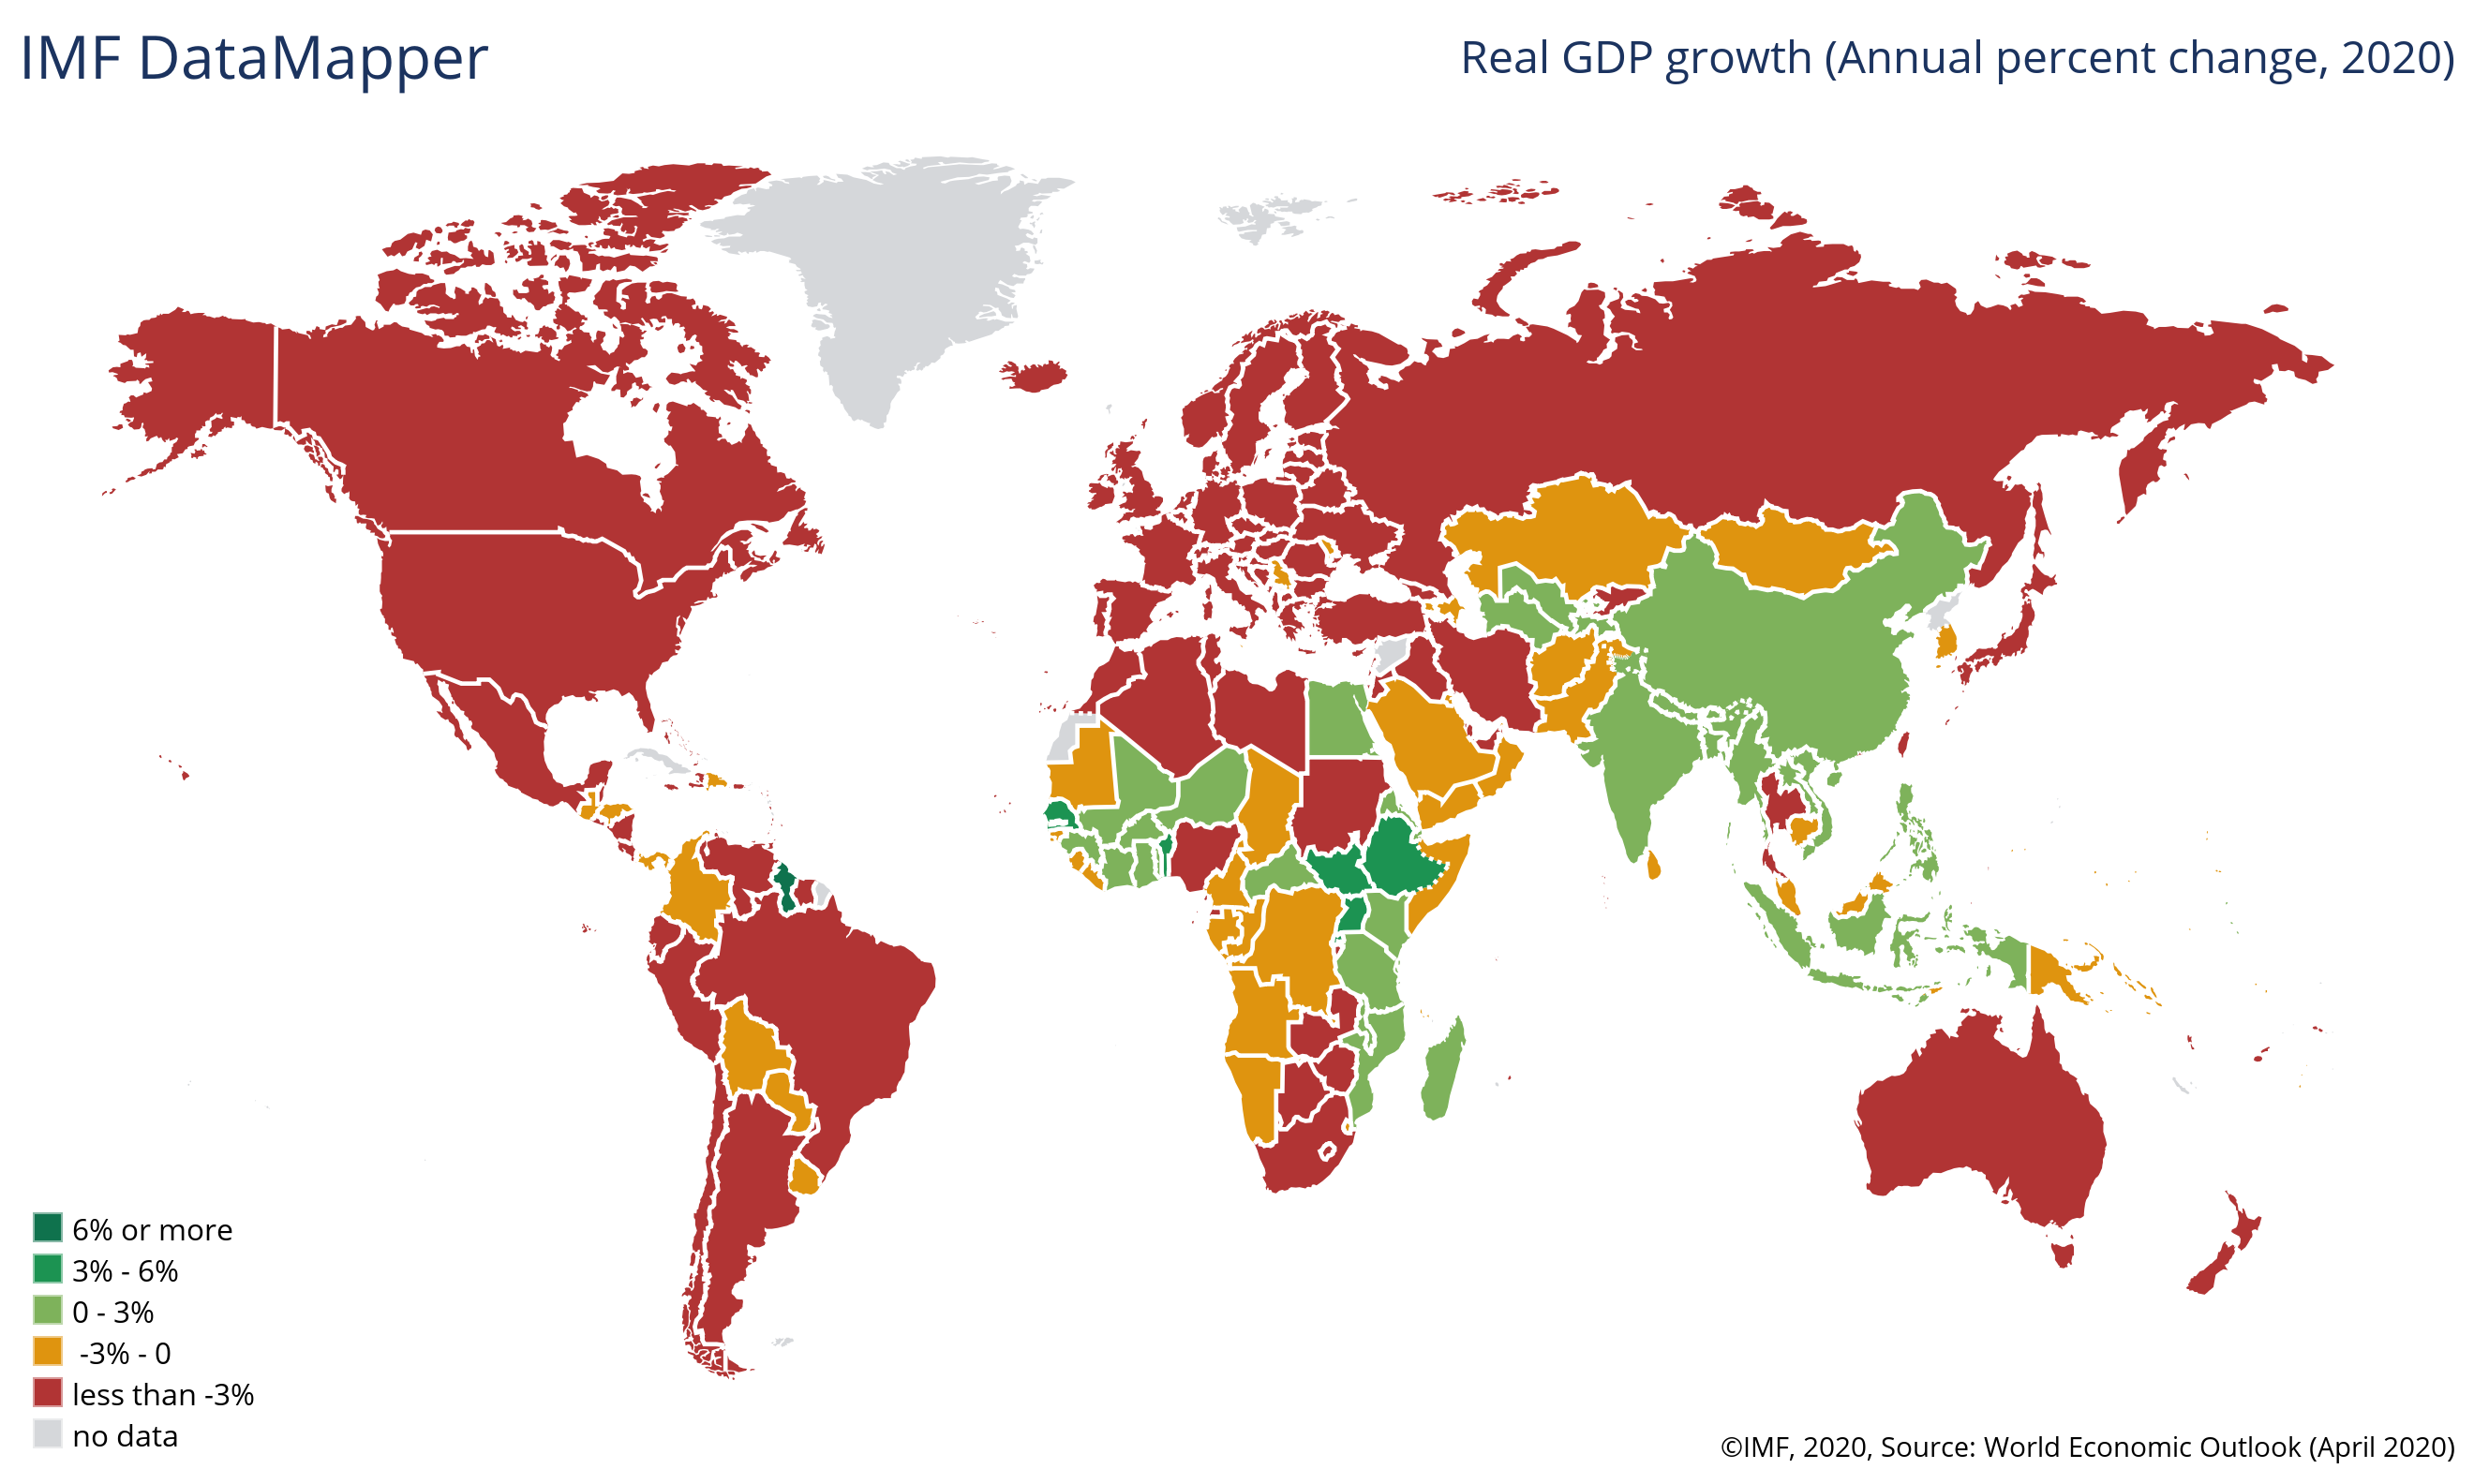 World map chart showing GDP growth rate across countries